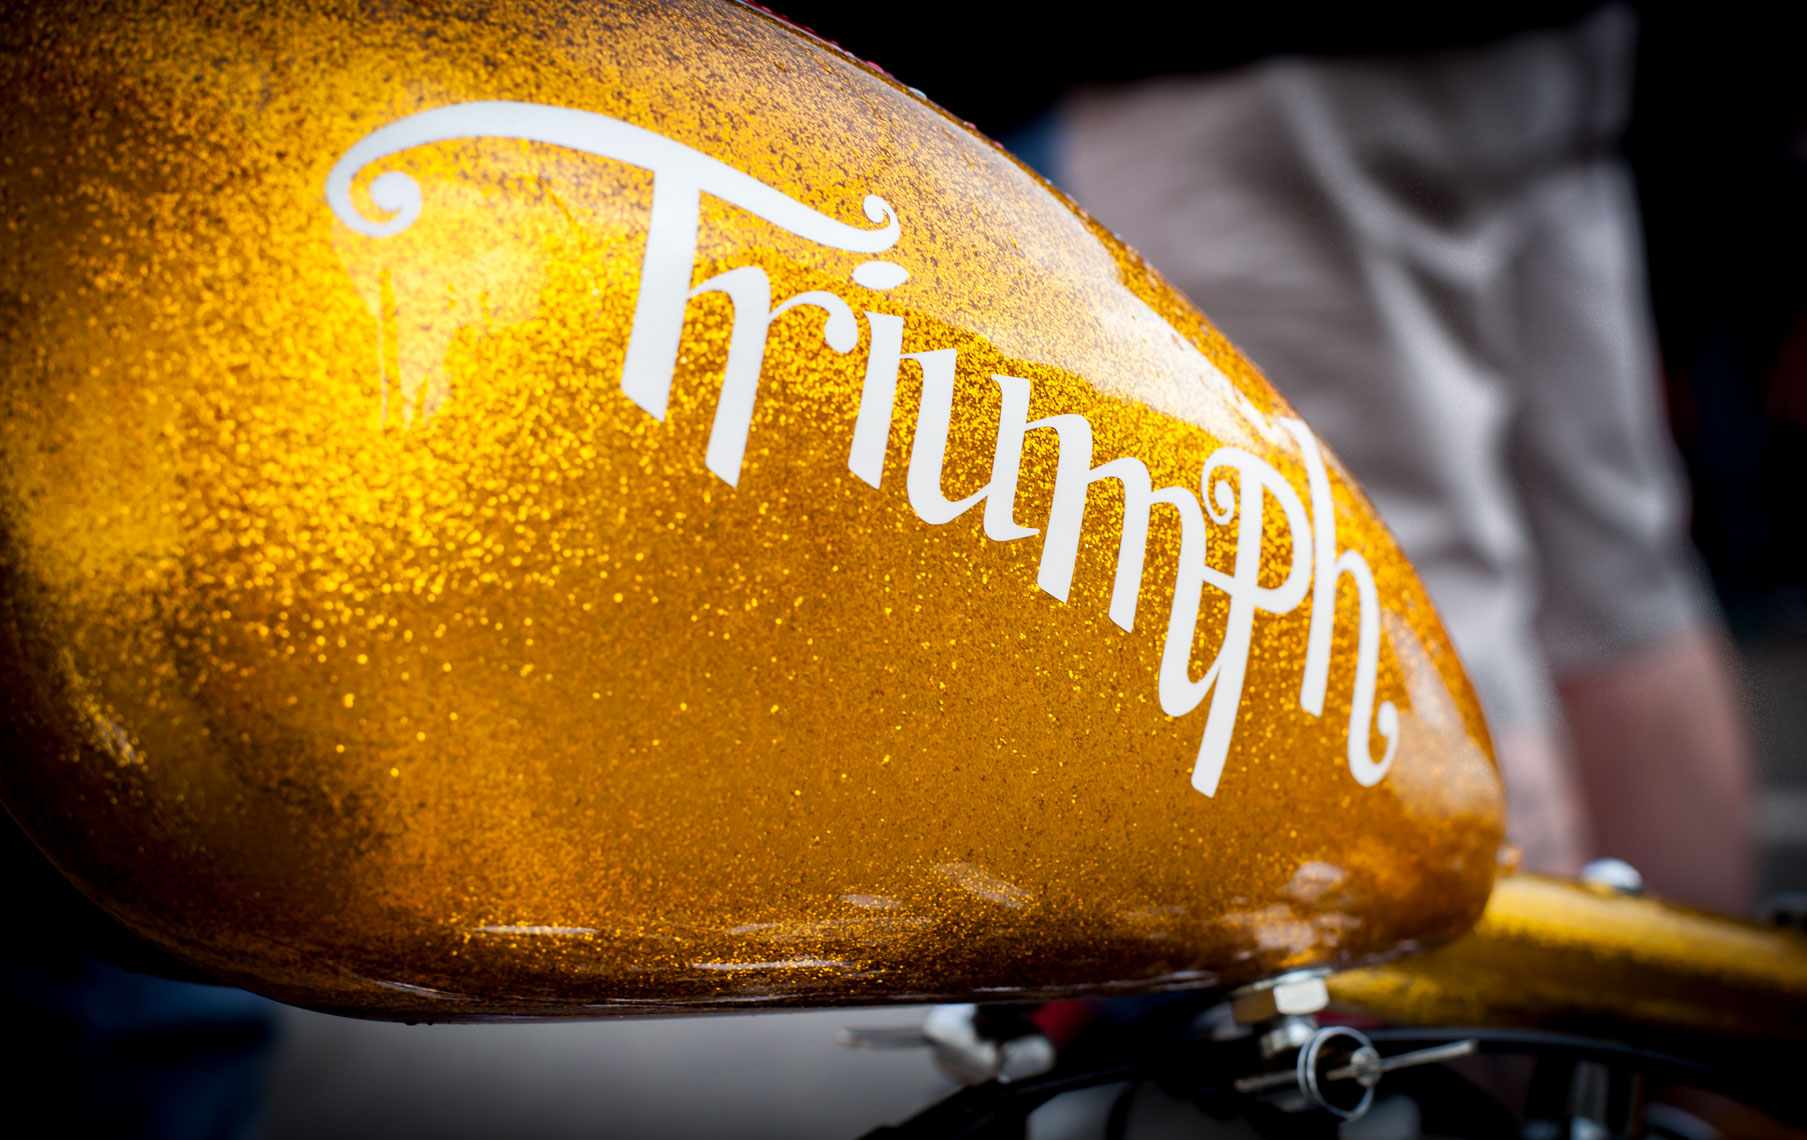 27 Location Photography Custom Motorcycle Builderes Denver Colorado FTW Triumph Gold Sparkle